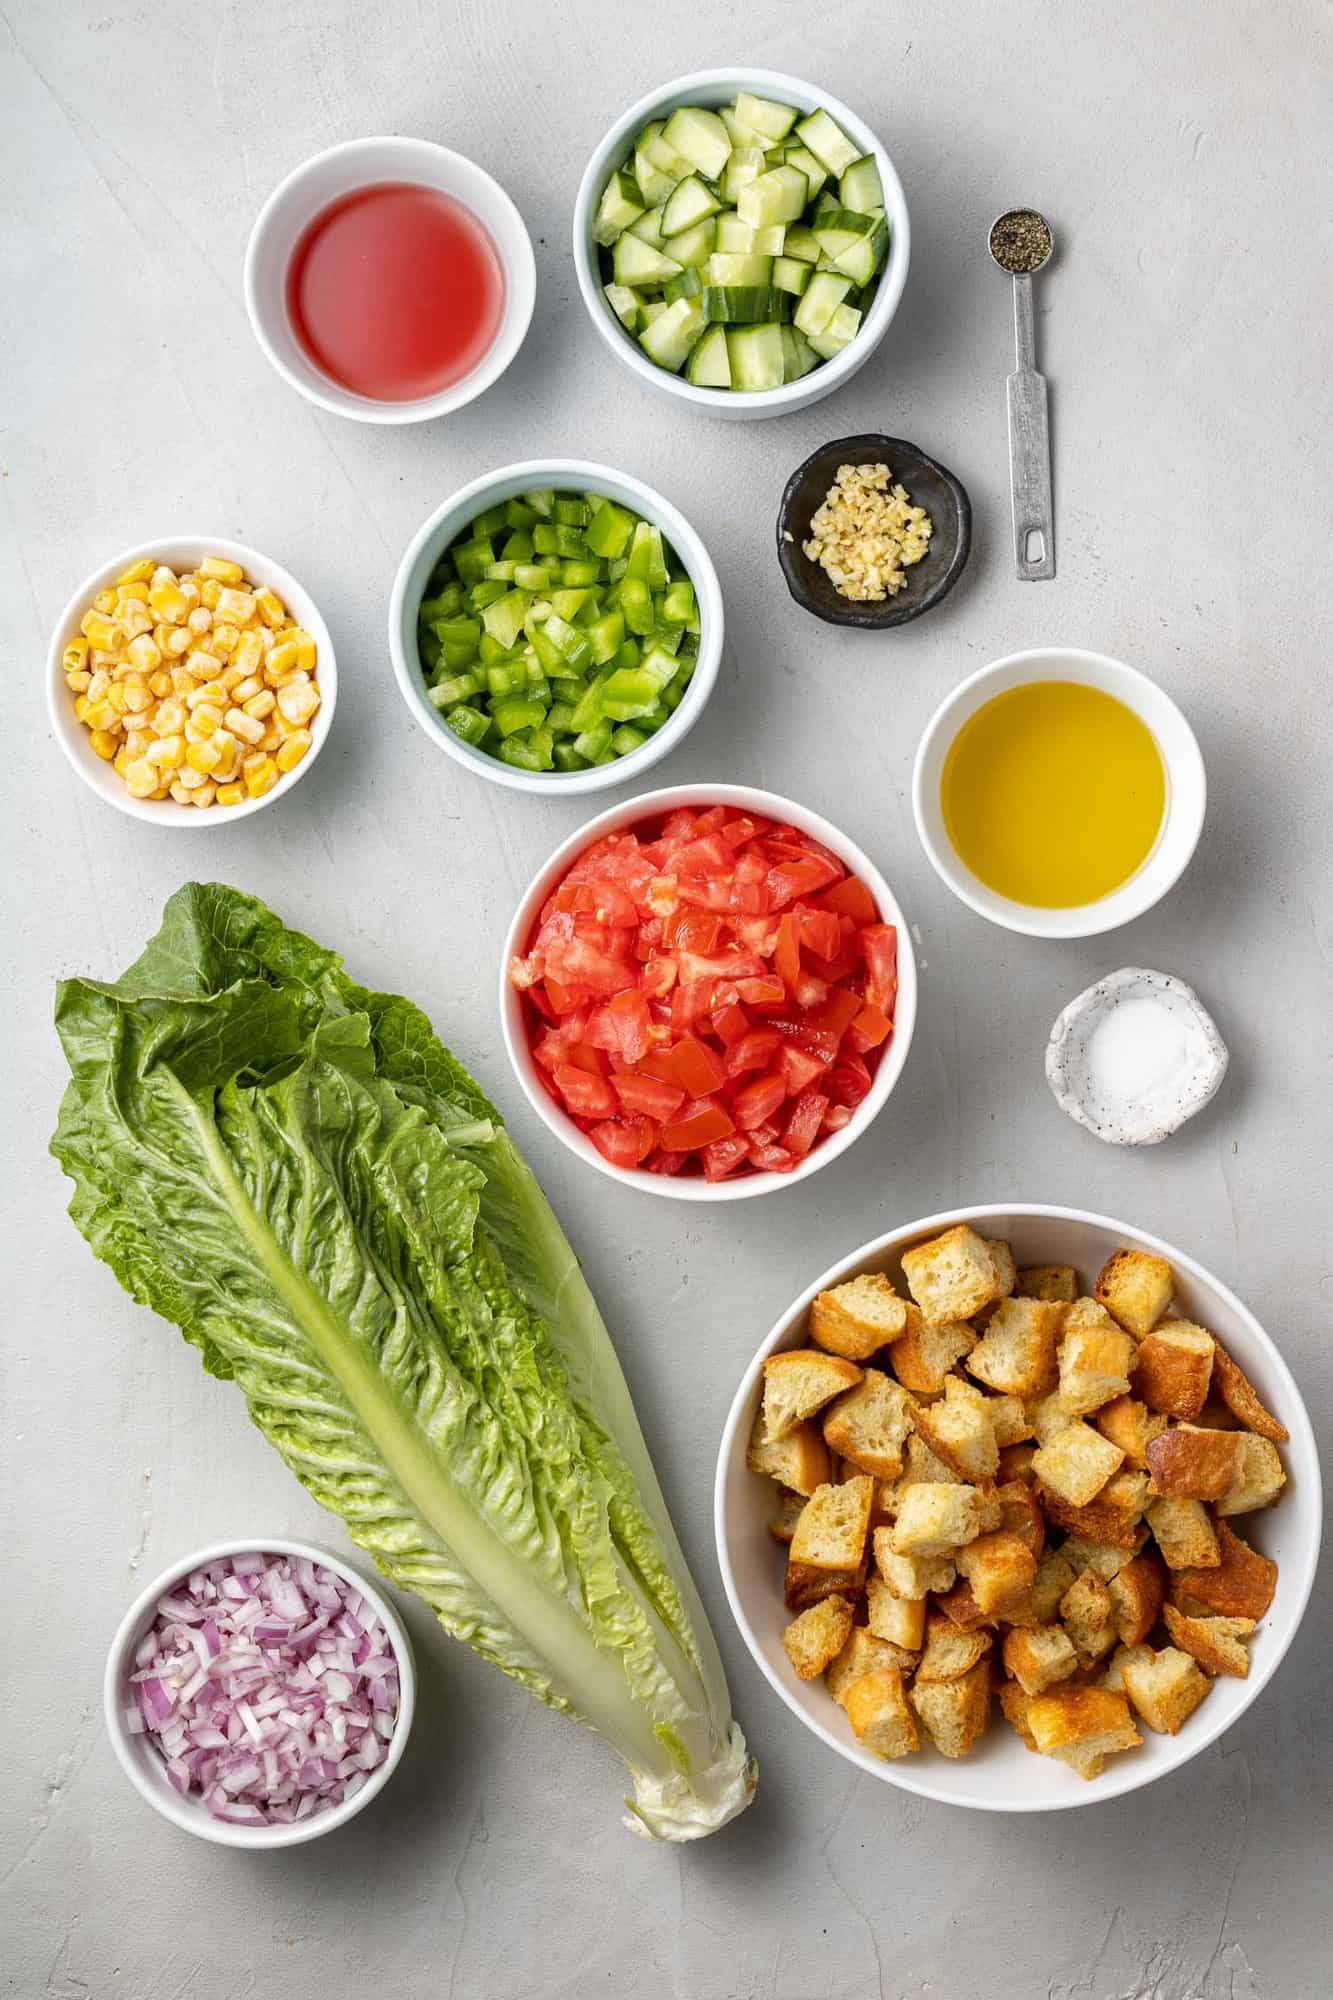 Overhead view of ingredients needed for salad recipe.